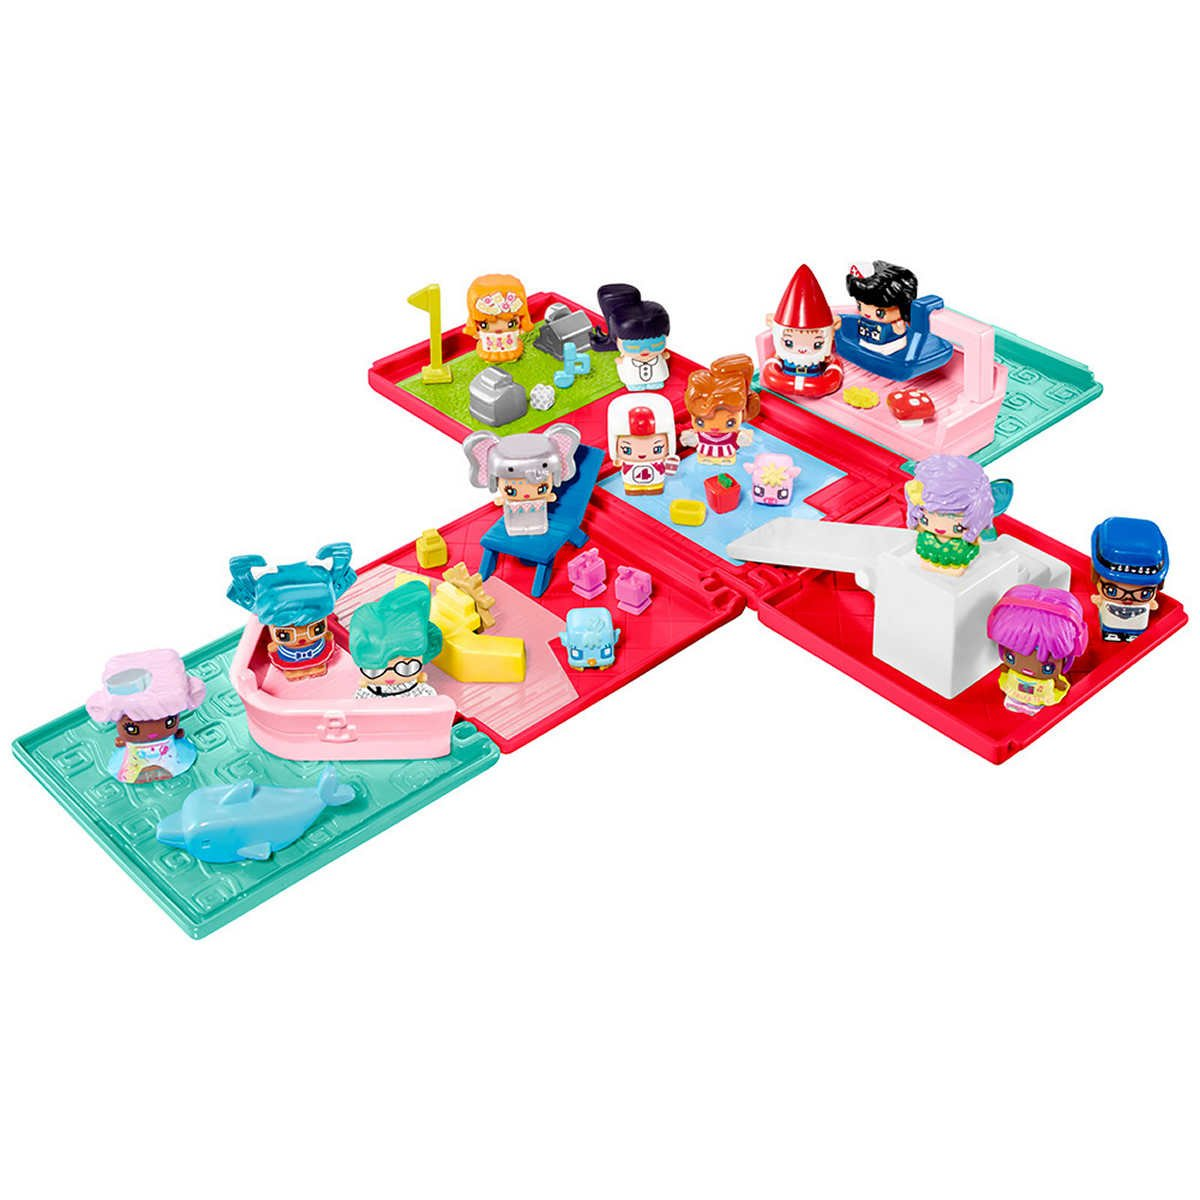 My mini mixie qs 16 figures cruise party playset with mystery figures features toy pets themed furniture moving parts hairstyles outfits and animal